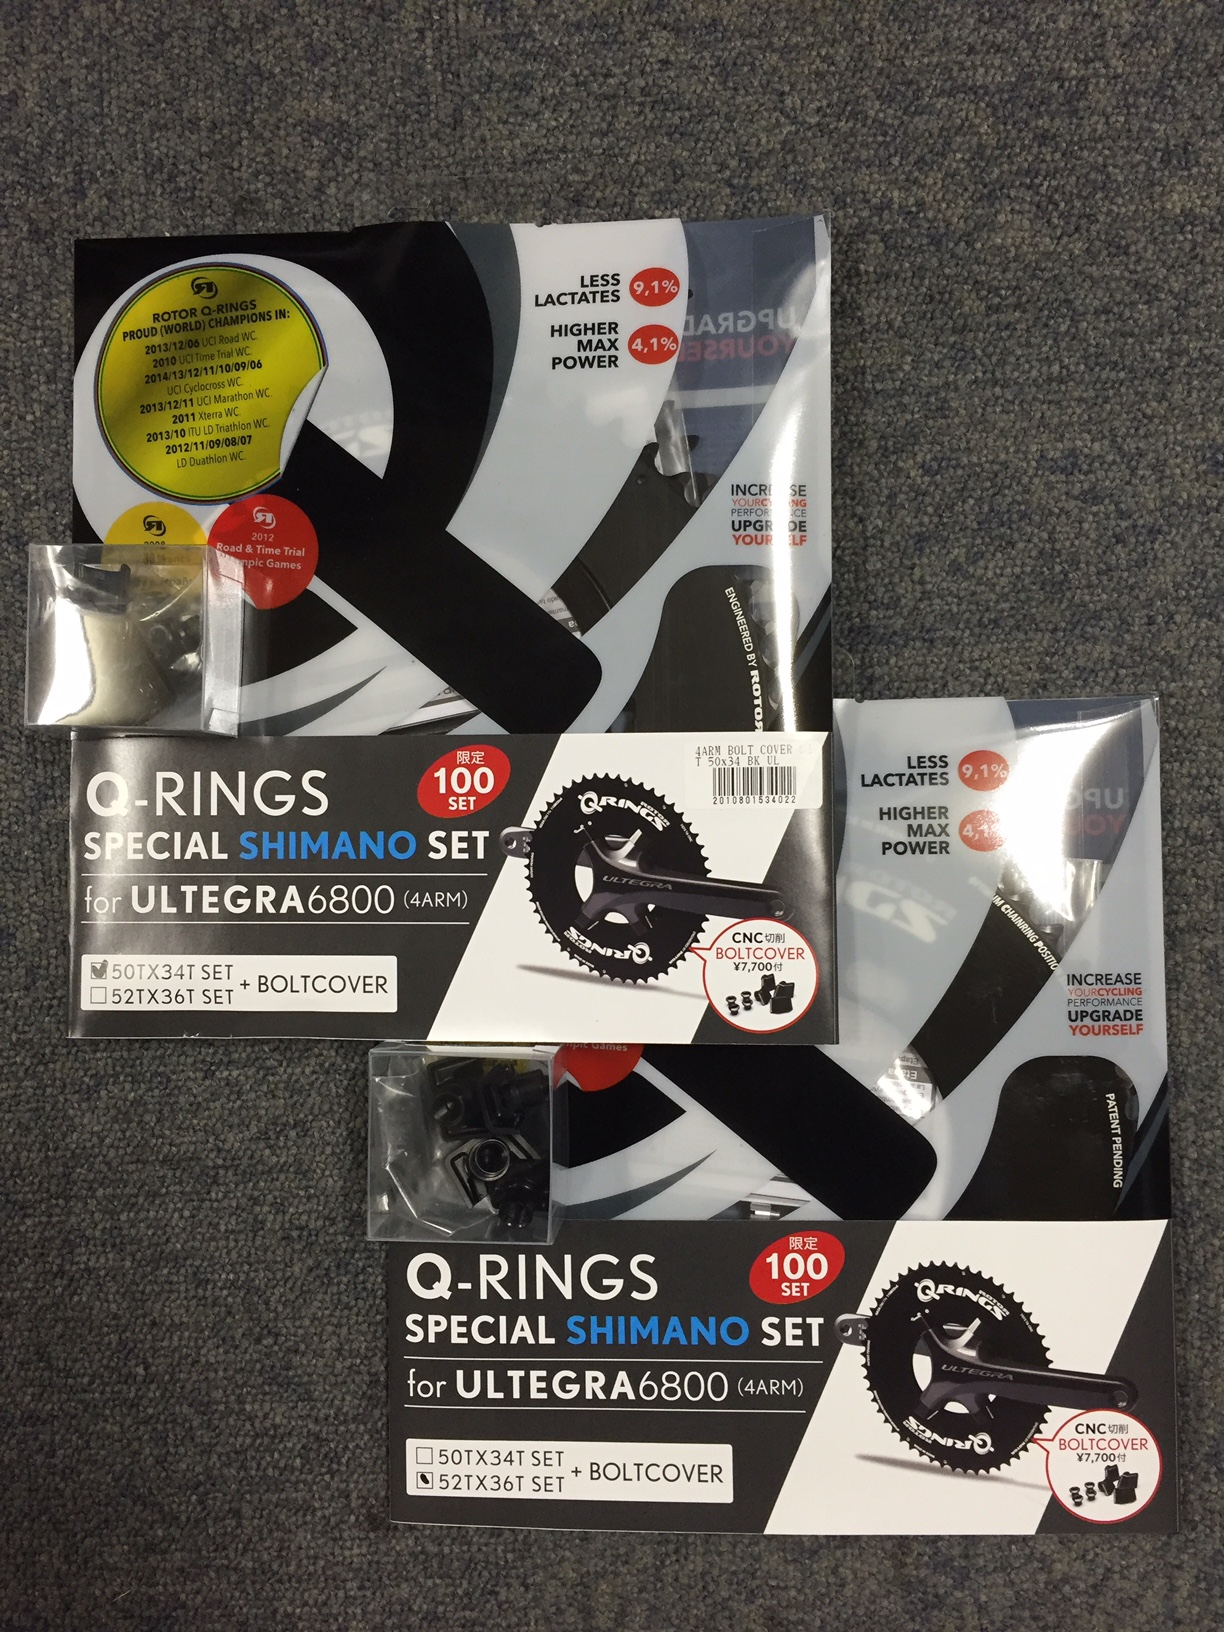 Q-RINGS-SP-SHMN-SET-1.jpg